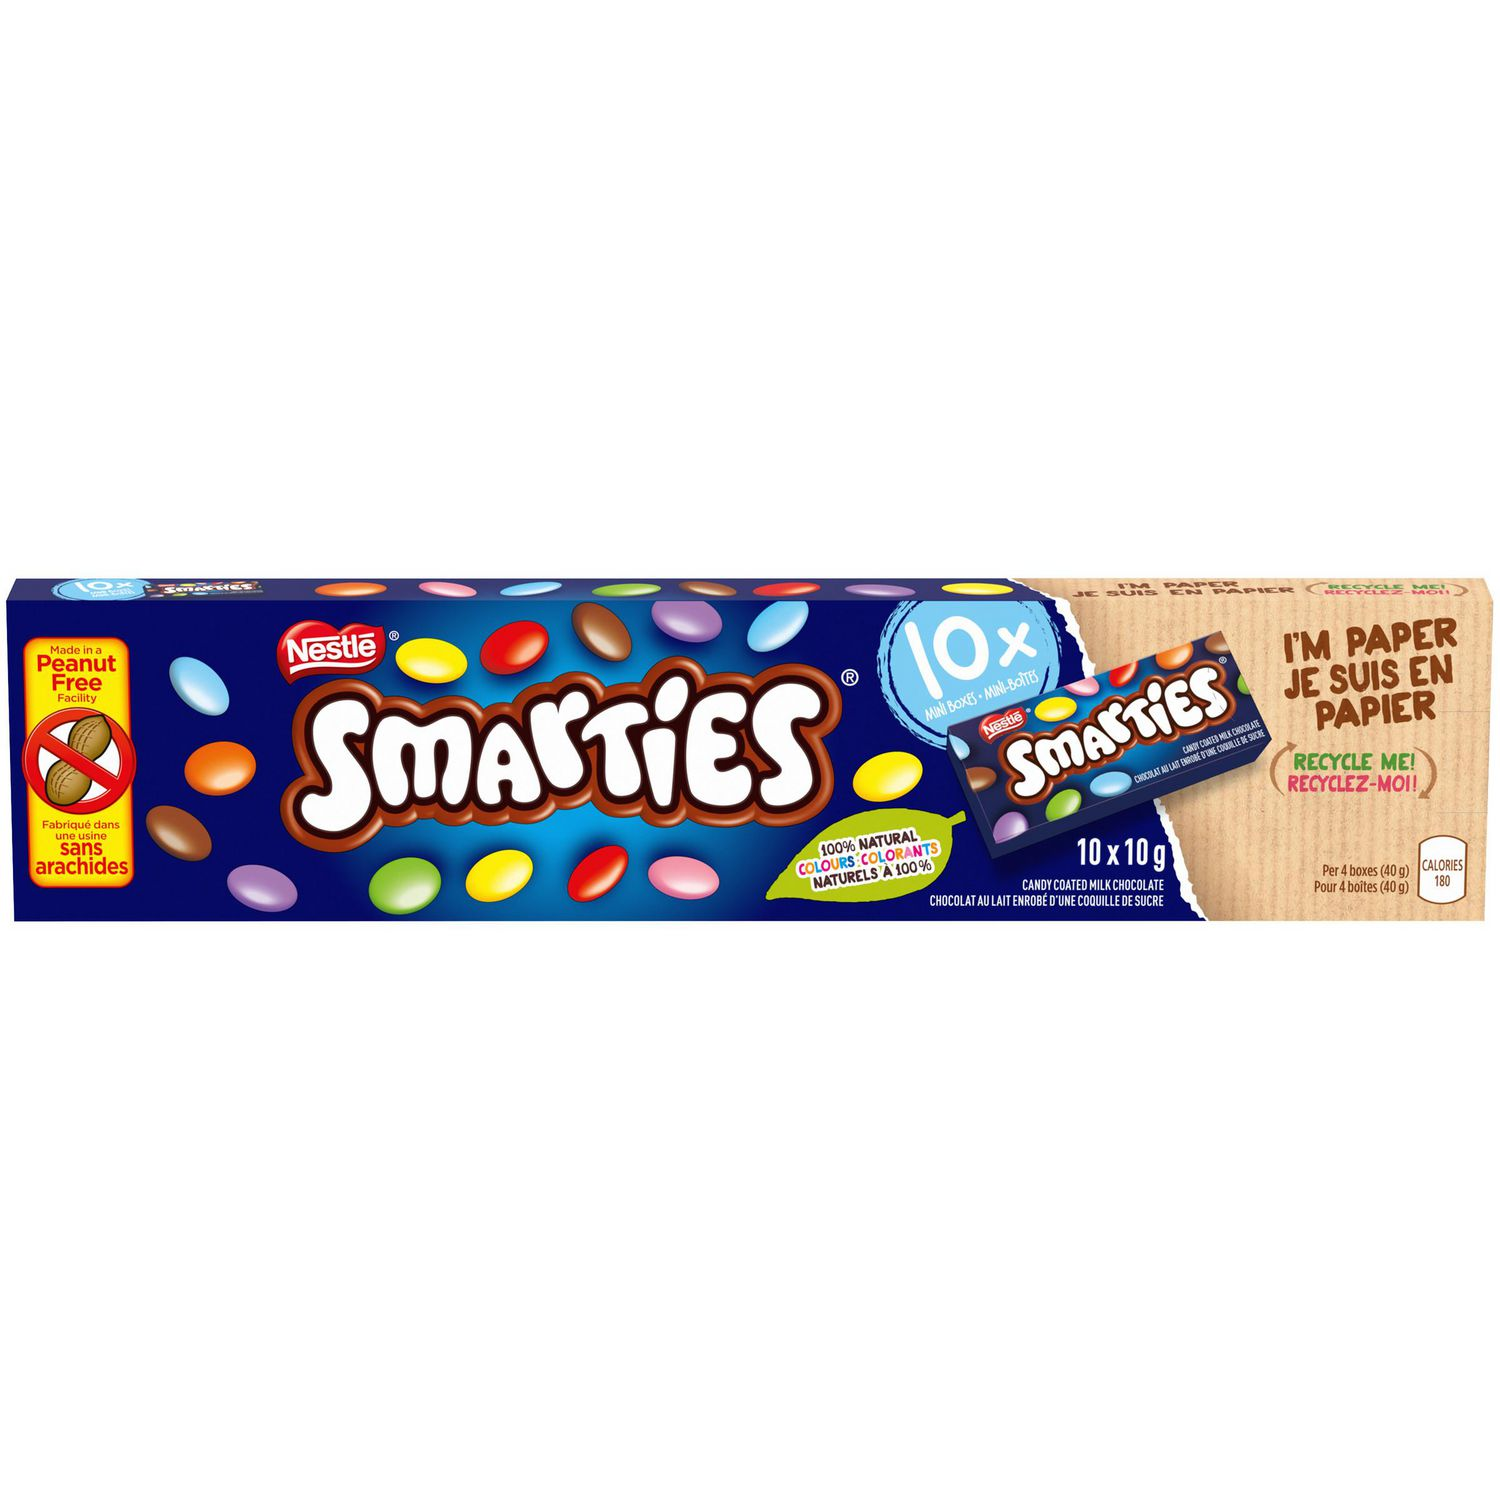 SMARTIES® Candy Coated Chocolates